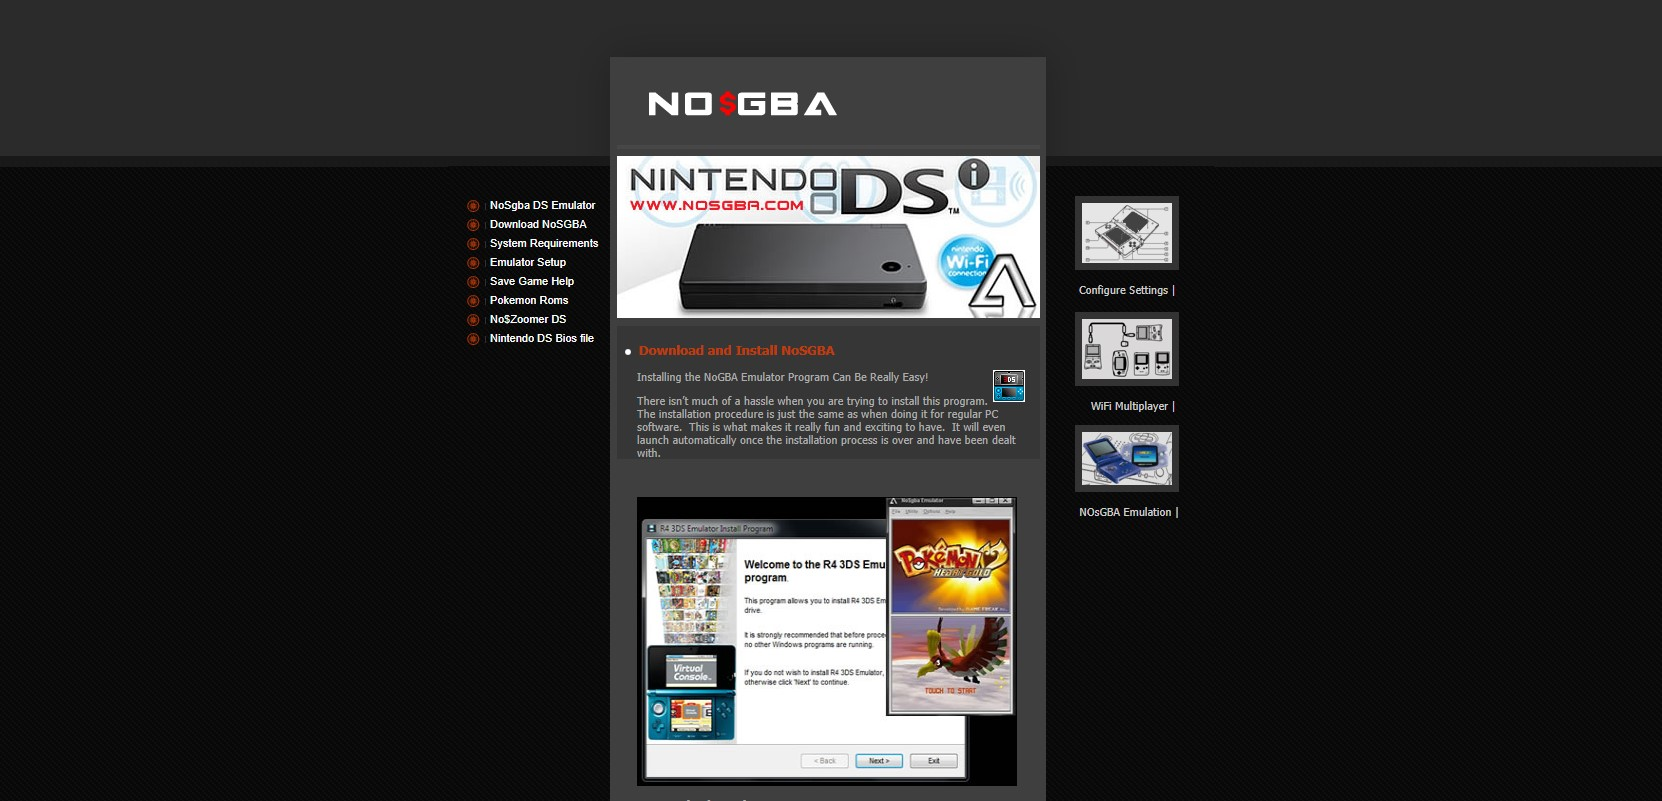 No$GBA Nintendo 3DS Emulator